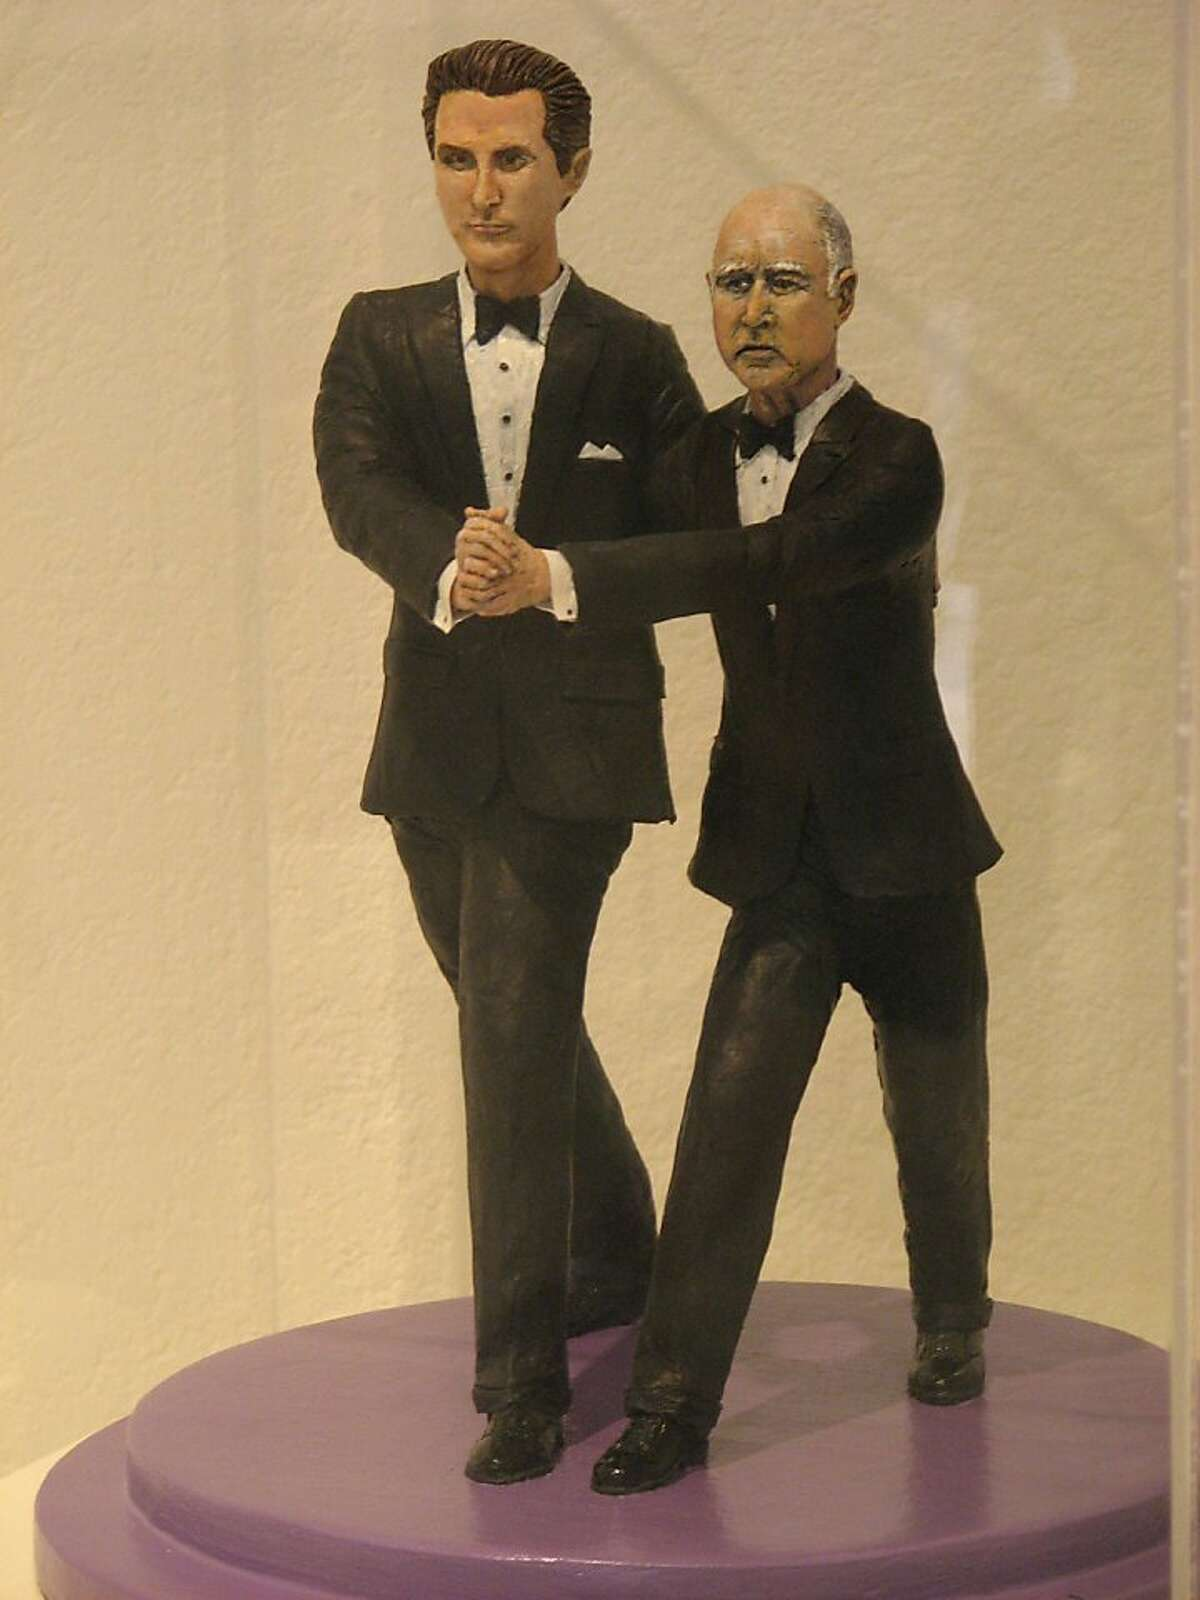 An art work at the California Exposition and State Fair in Sacramento shows Gov. Jerry Brown doing the tango with Lt. Gov. Gavin Newsom.